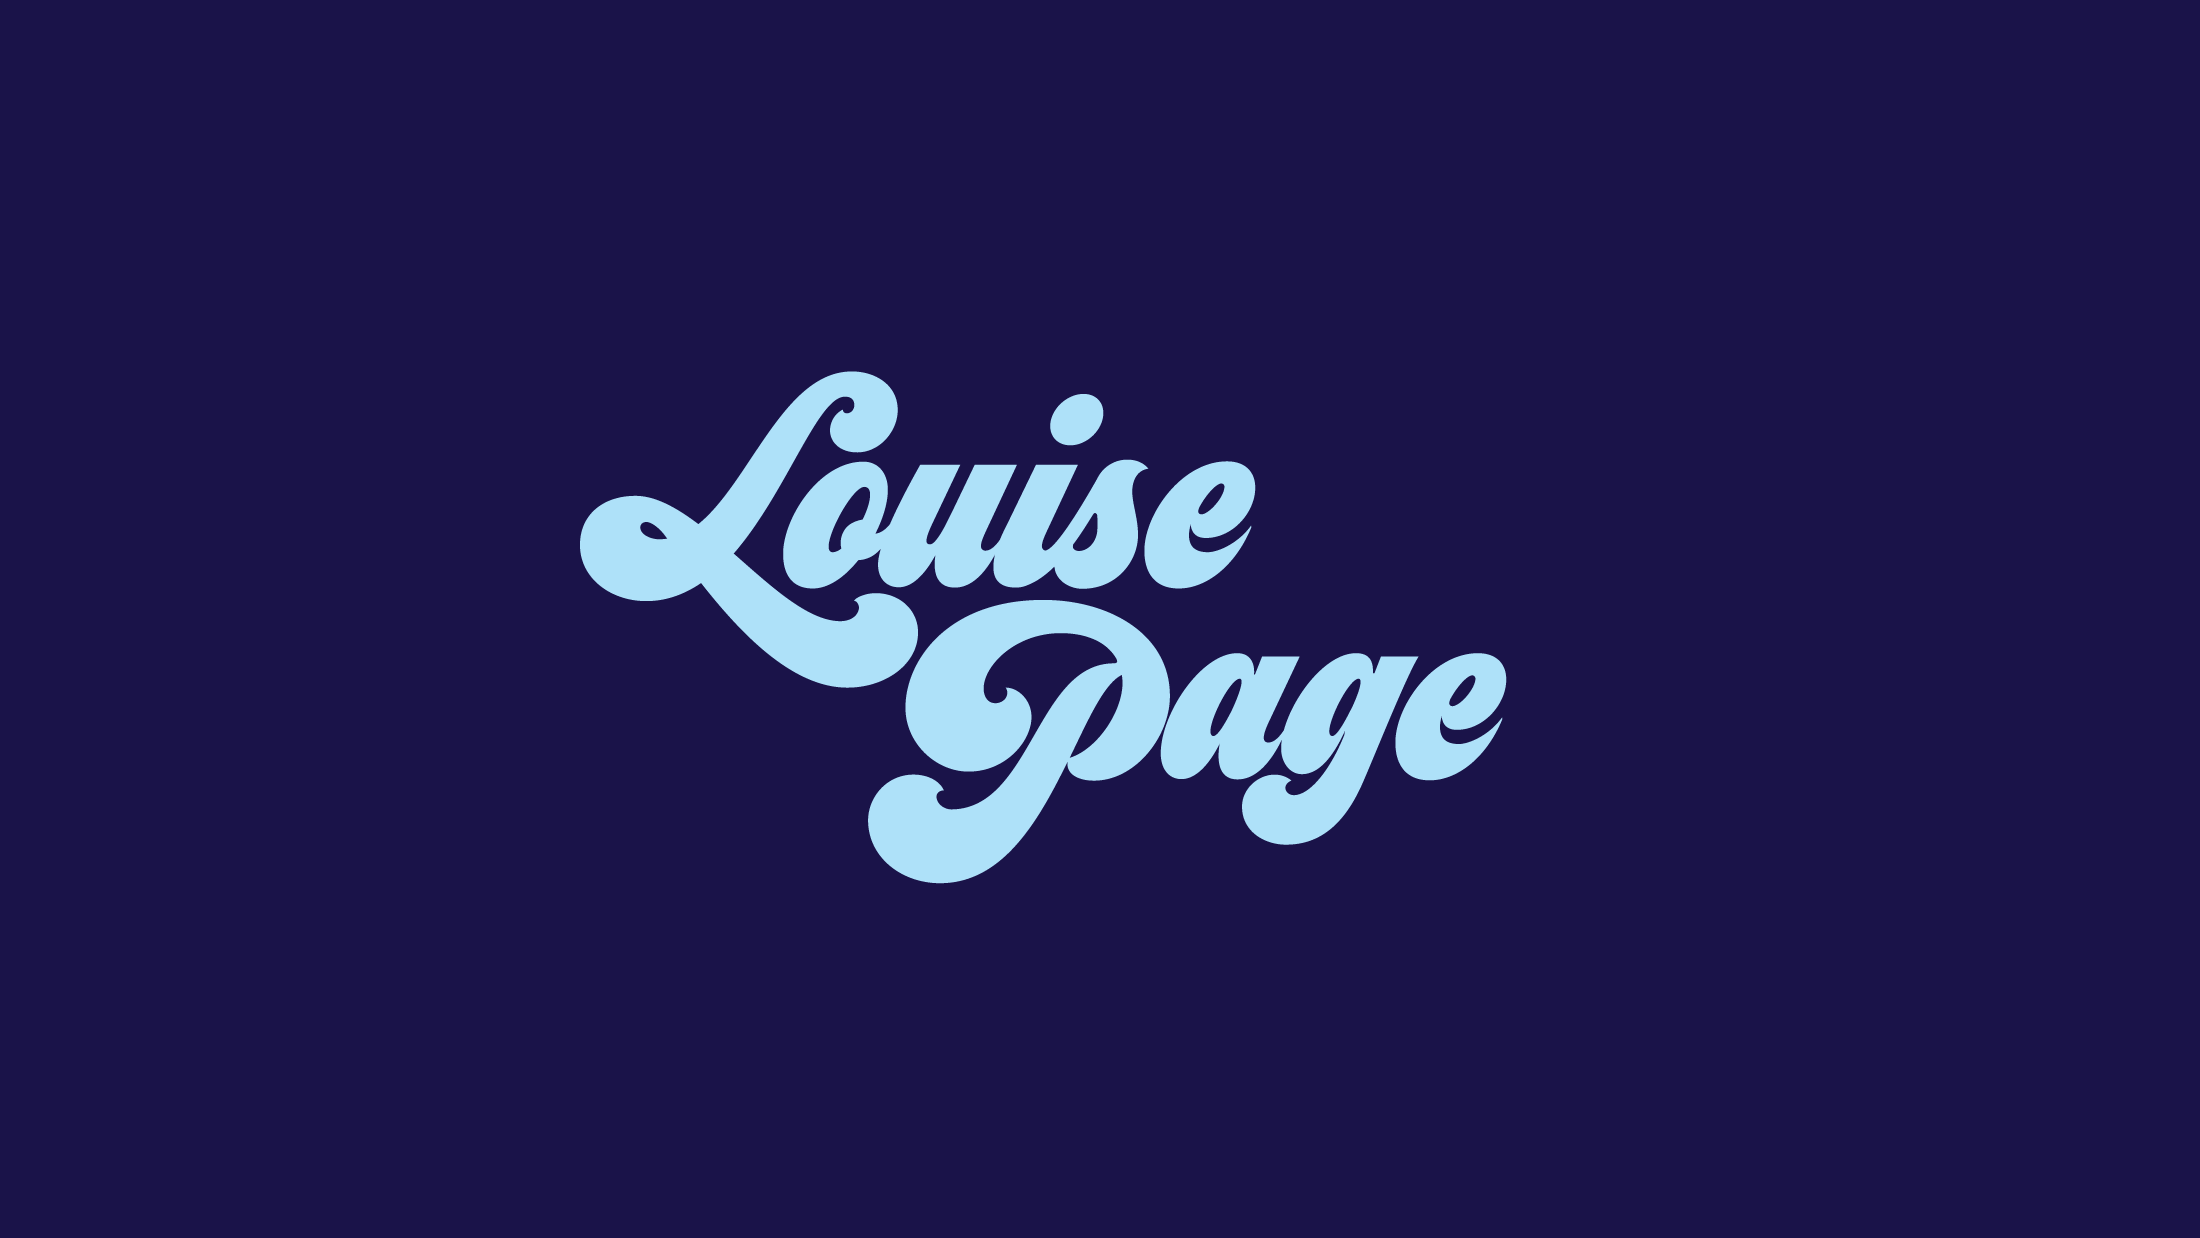 louise-page-slide.png